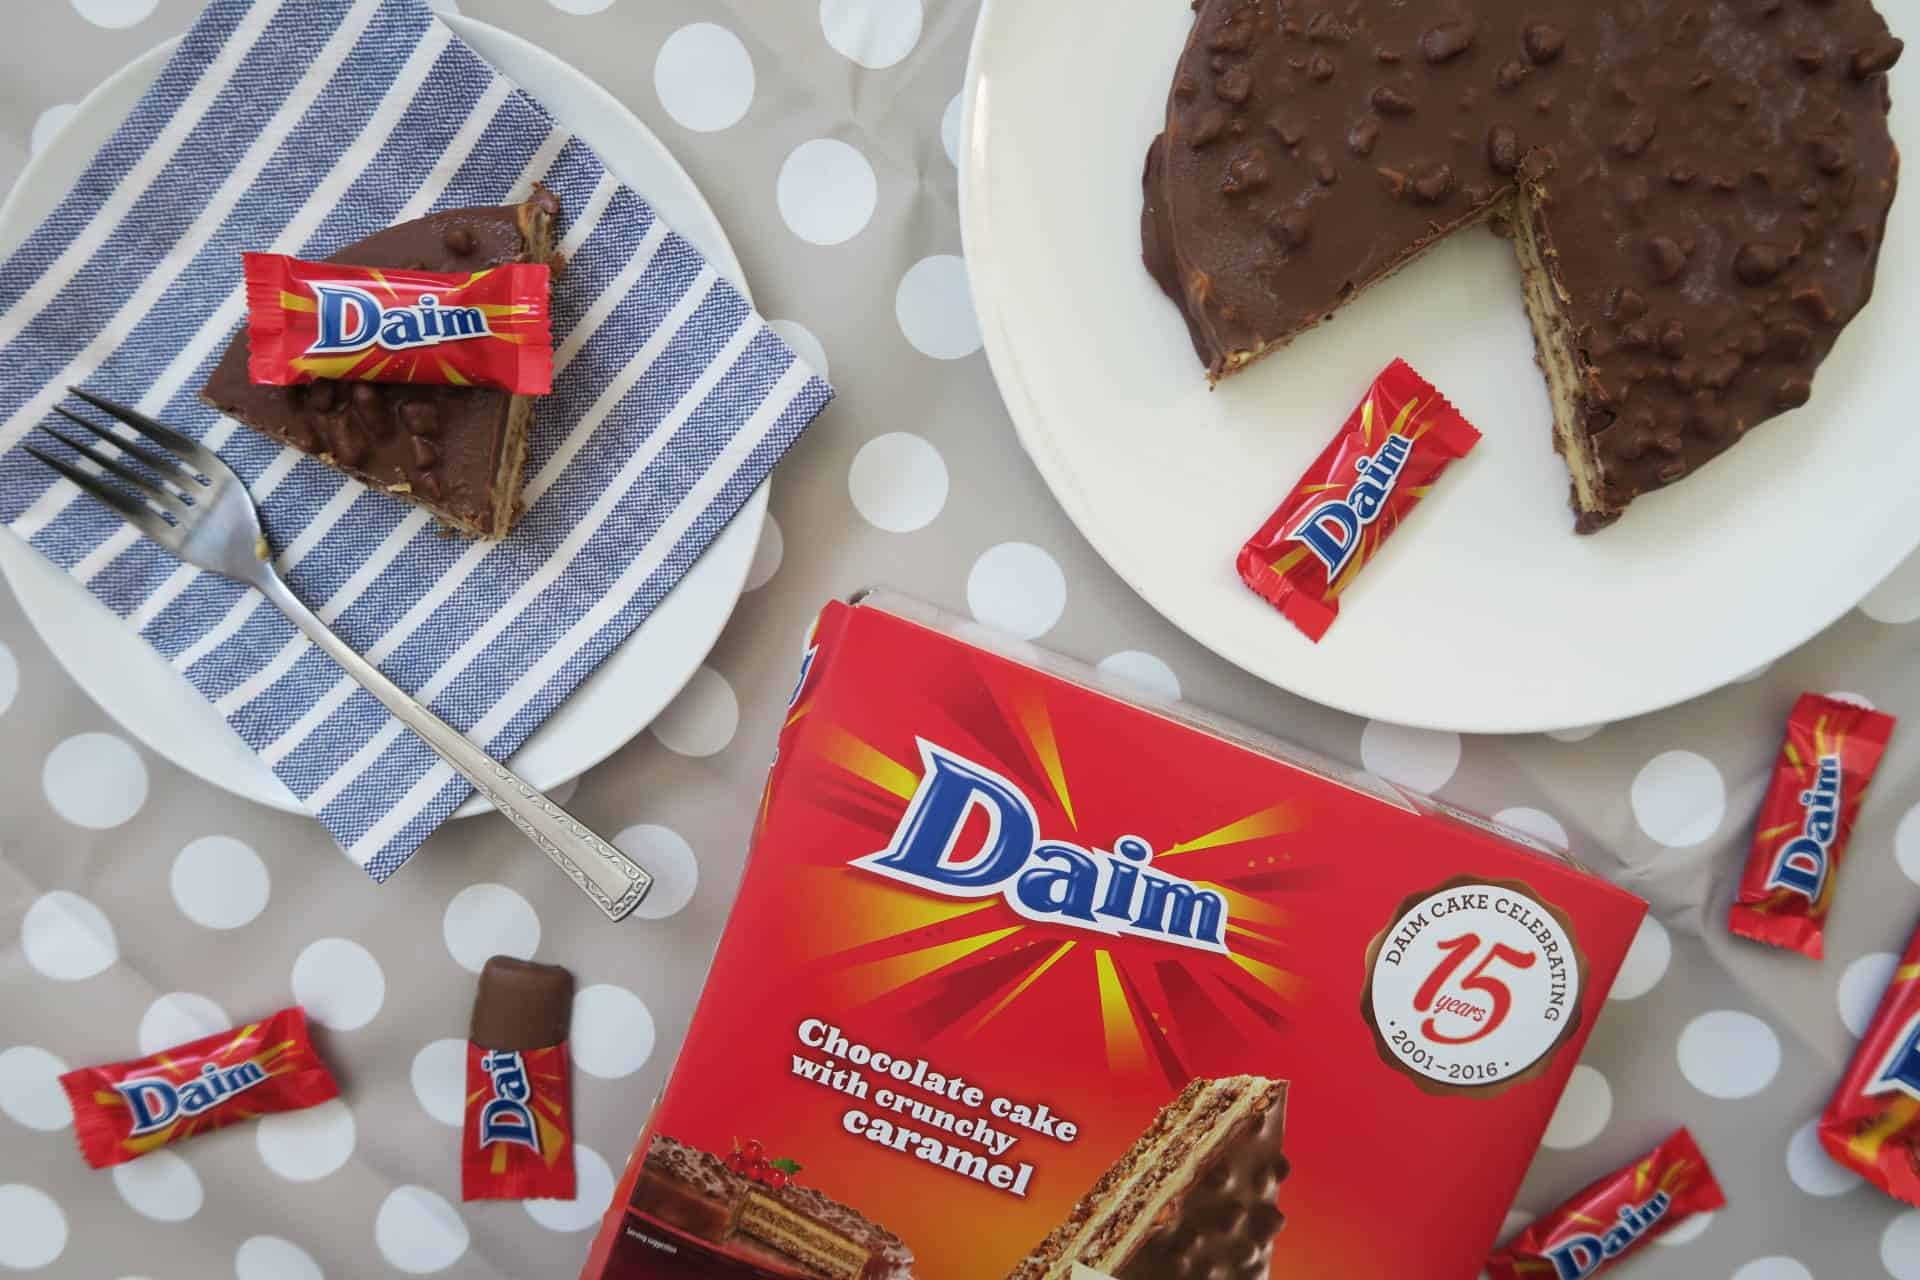 My Favourite… The Daim Gluten Free Chocolate Cake!